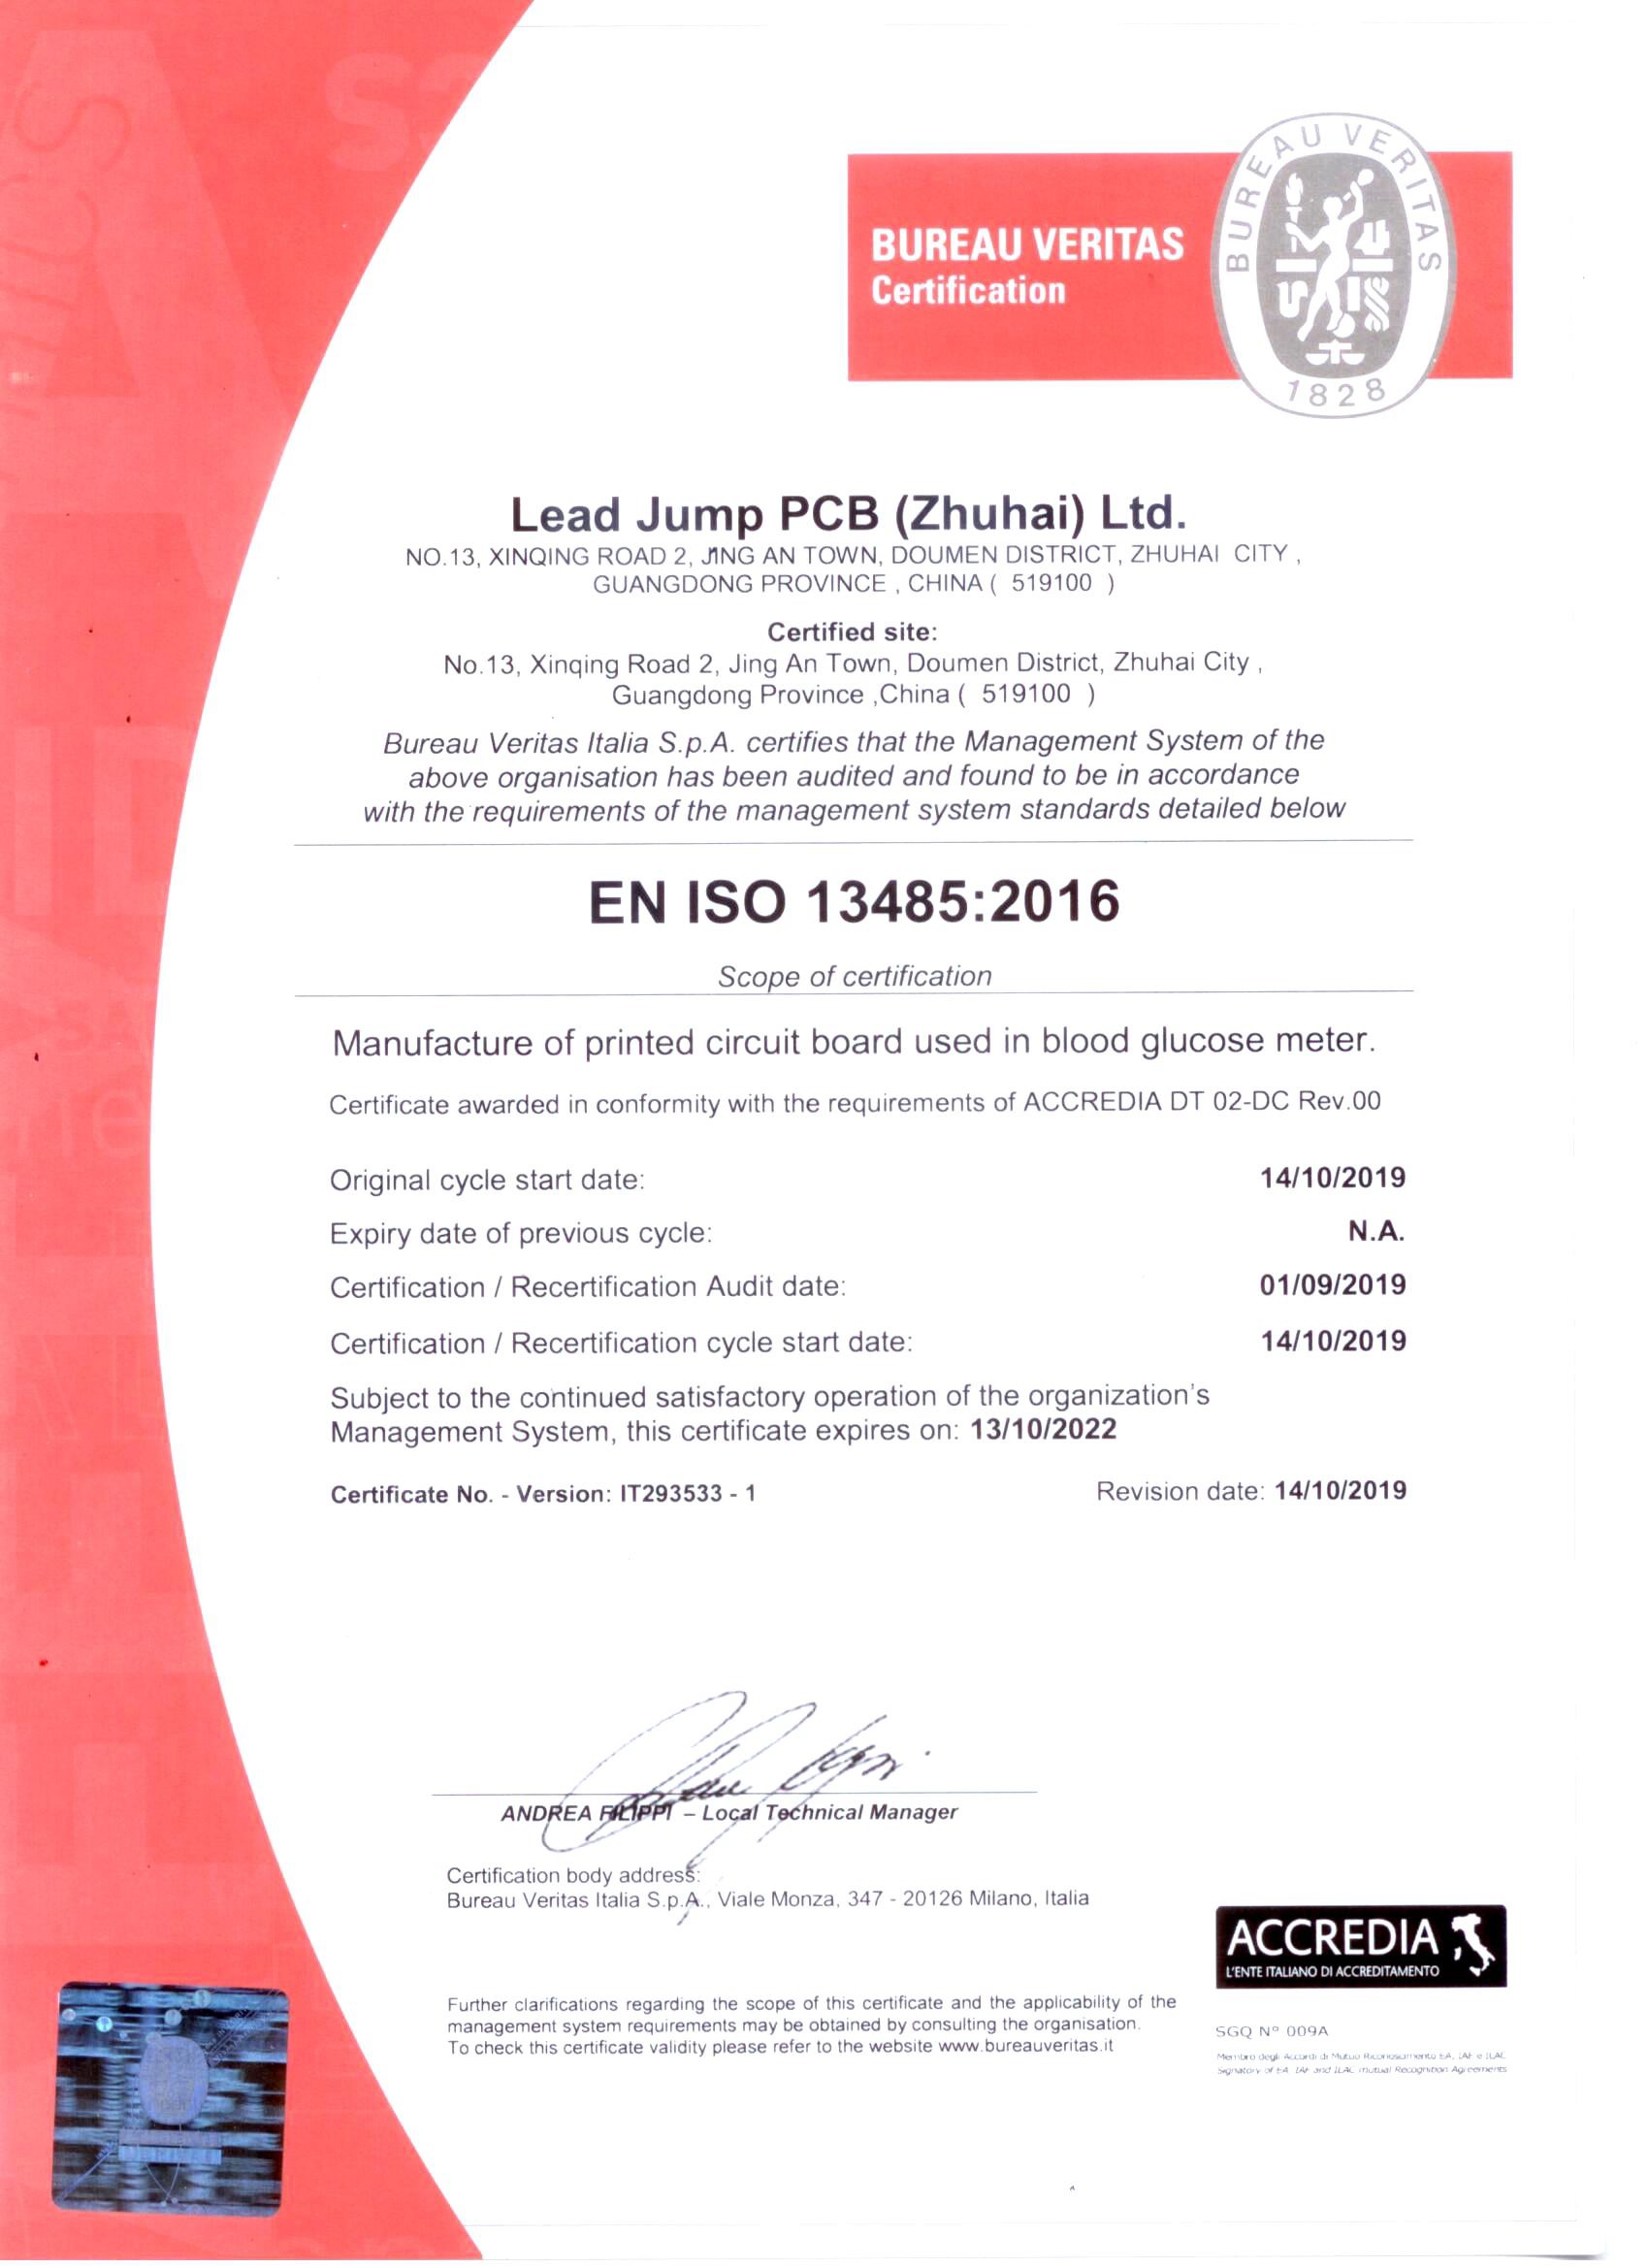 ISO13485 Certificate(2019.10.14-2022.10.13)